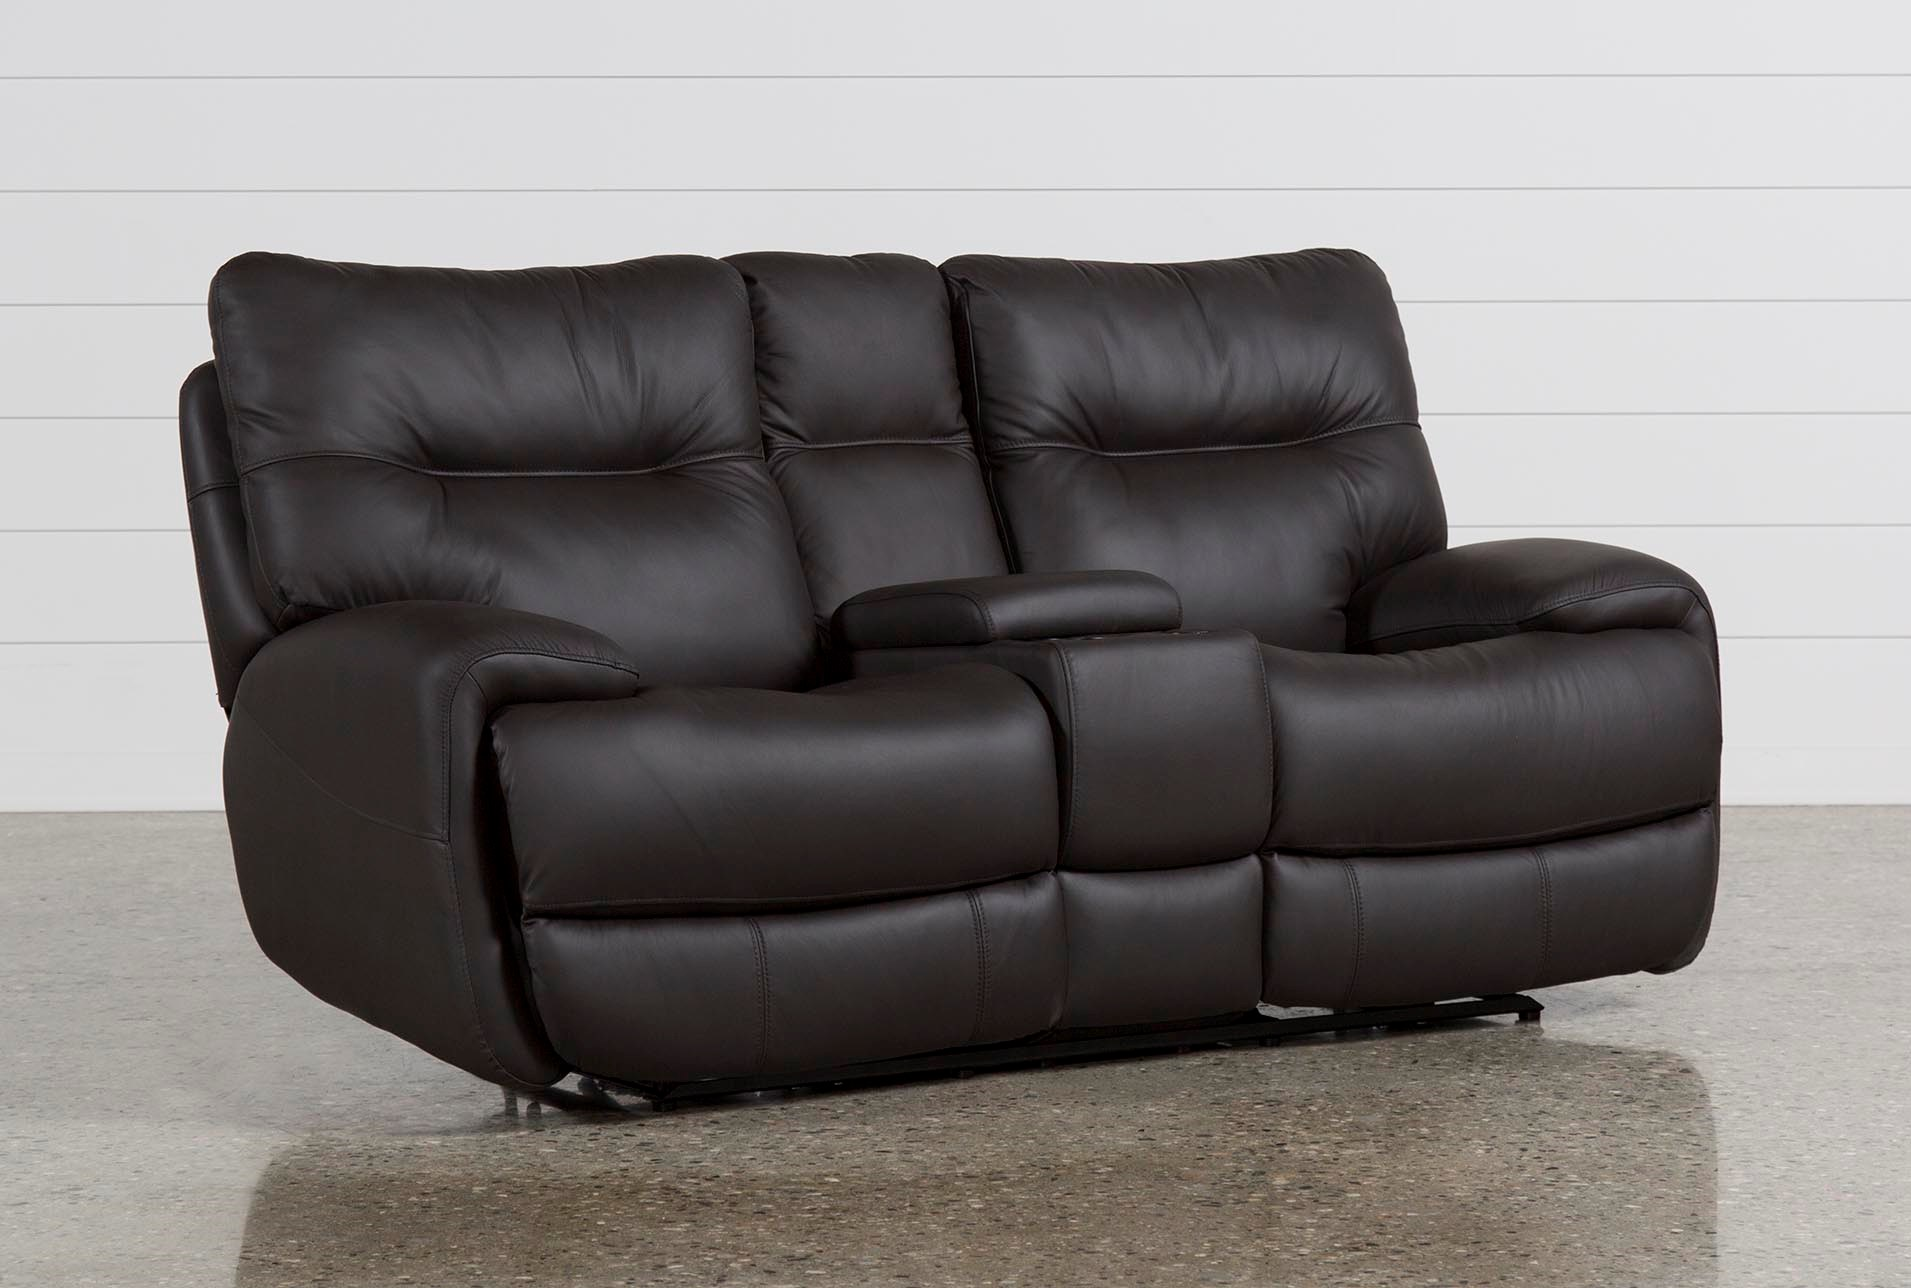 homelegance marille leather unique polished reclining loveseat set microfiber recliner of sofa rocker